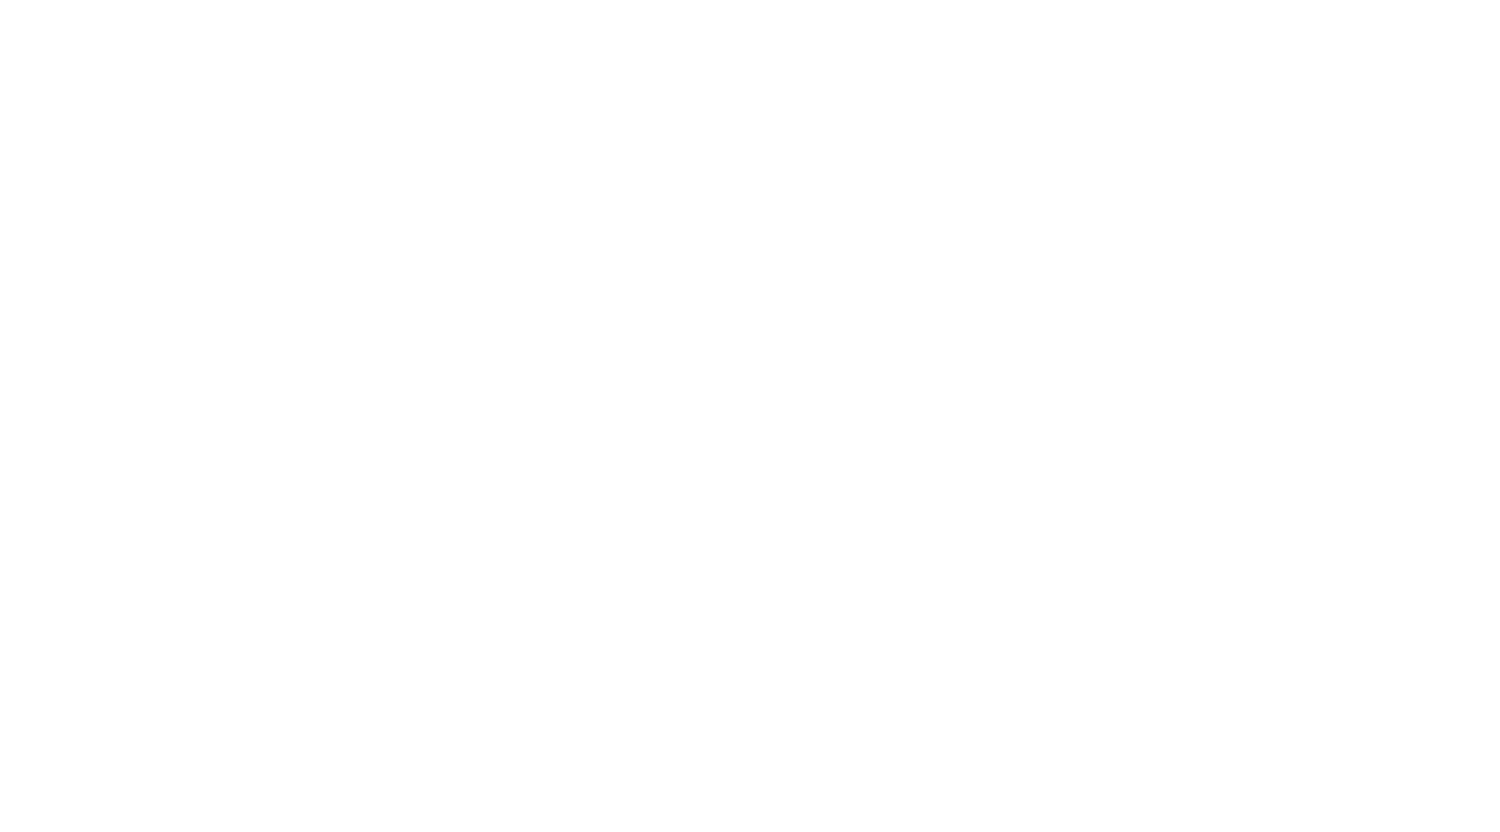 CYCLESIREN